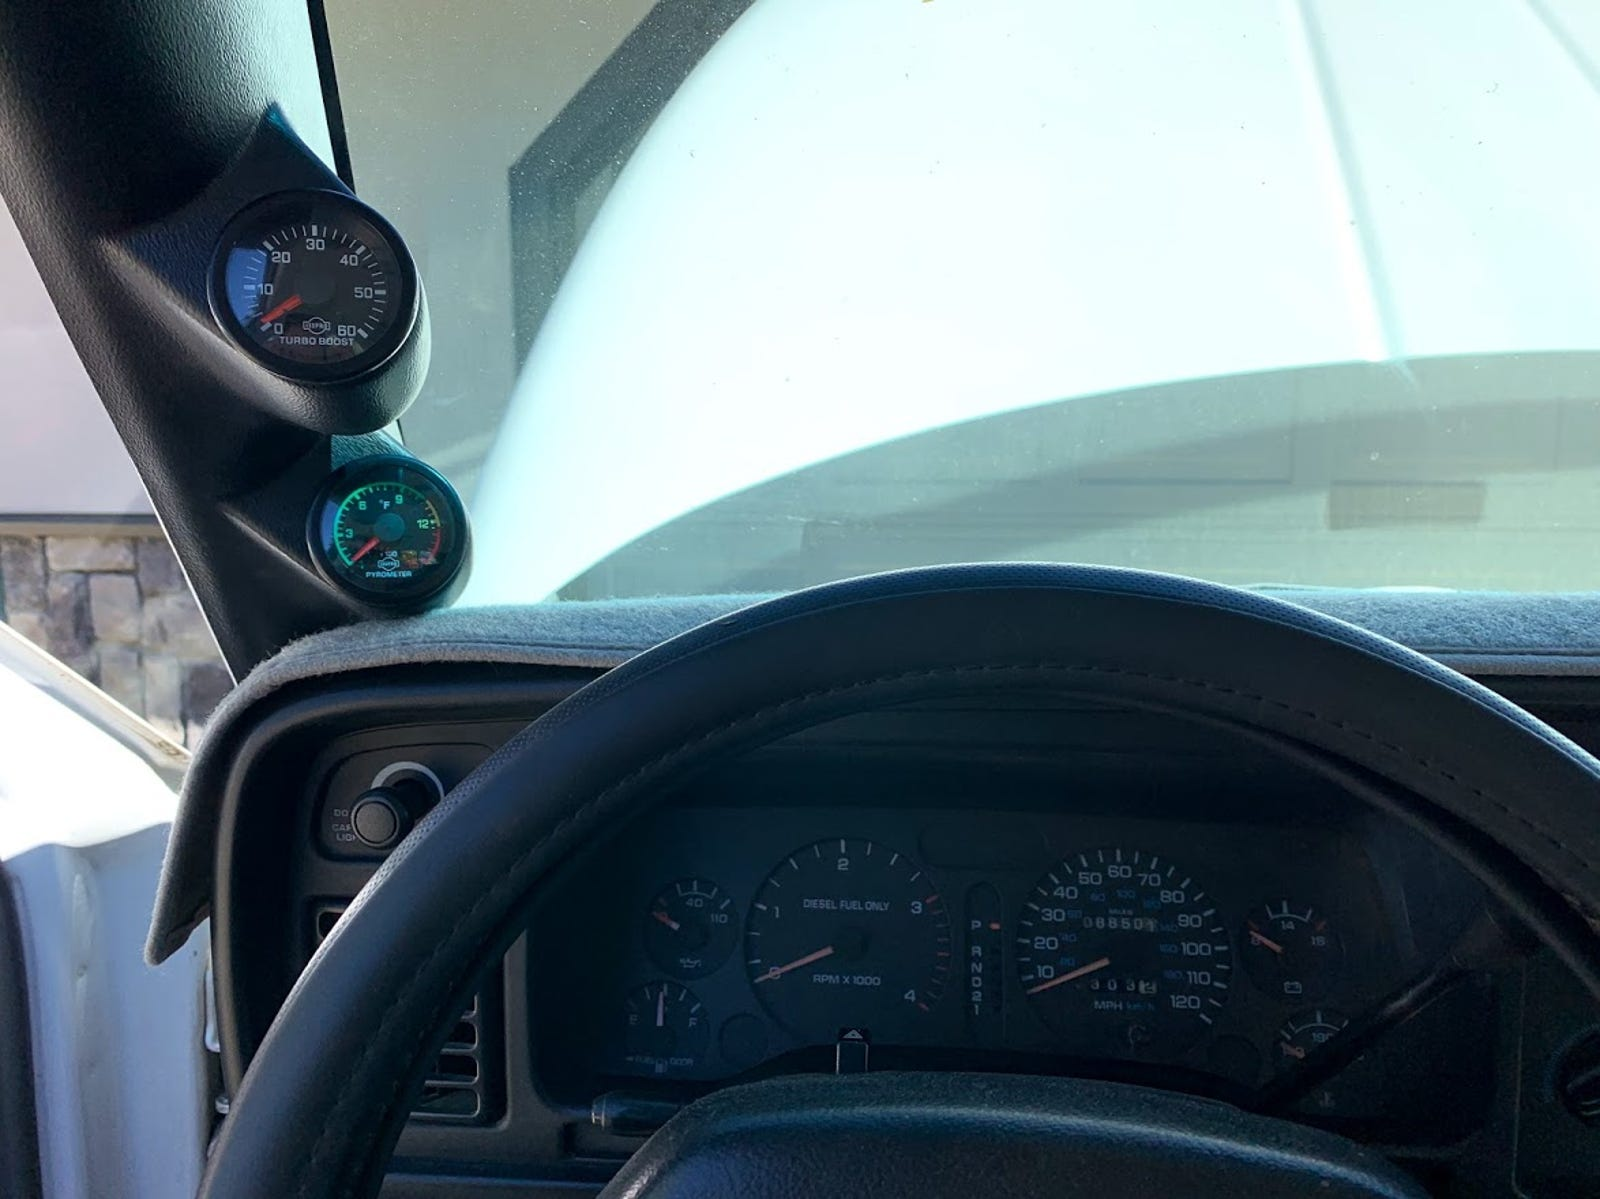 Isspro Boost and EGT gauges. All I need at this point.